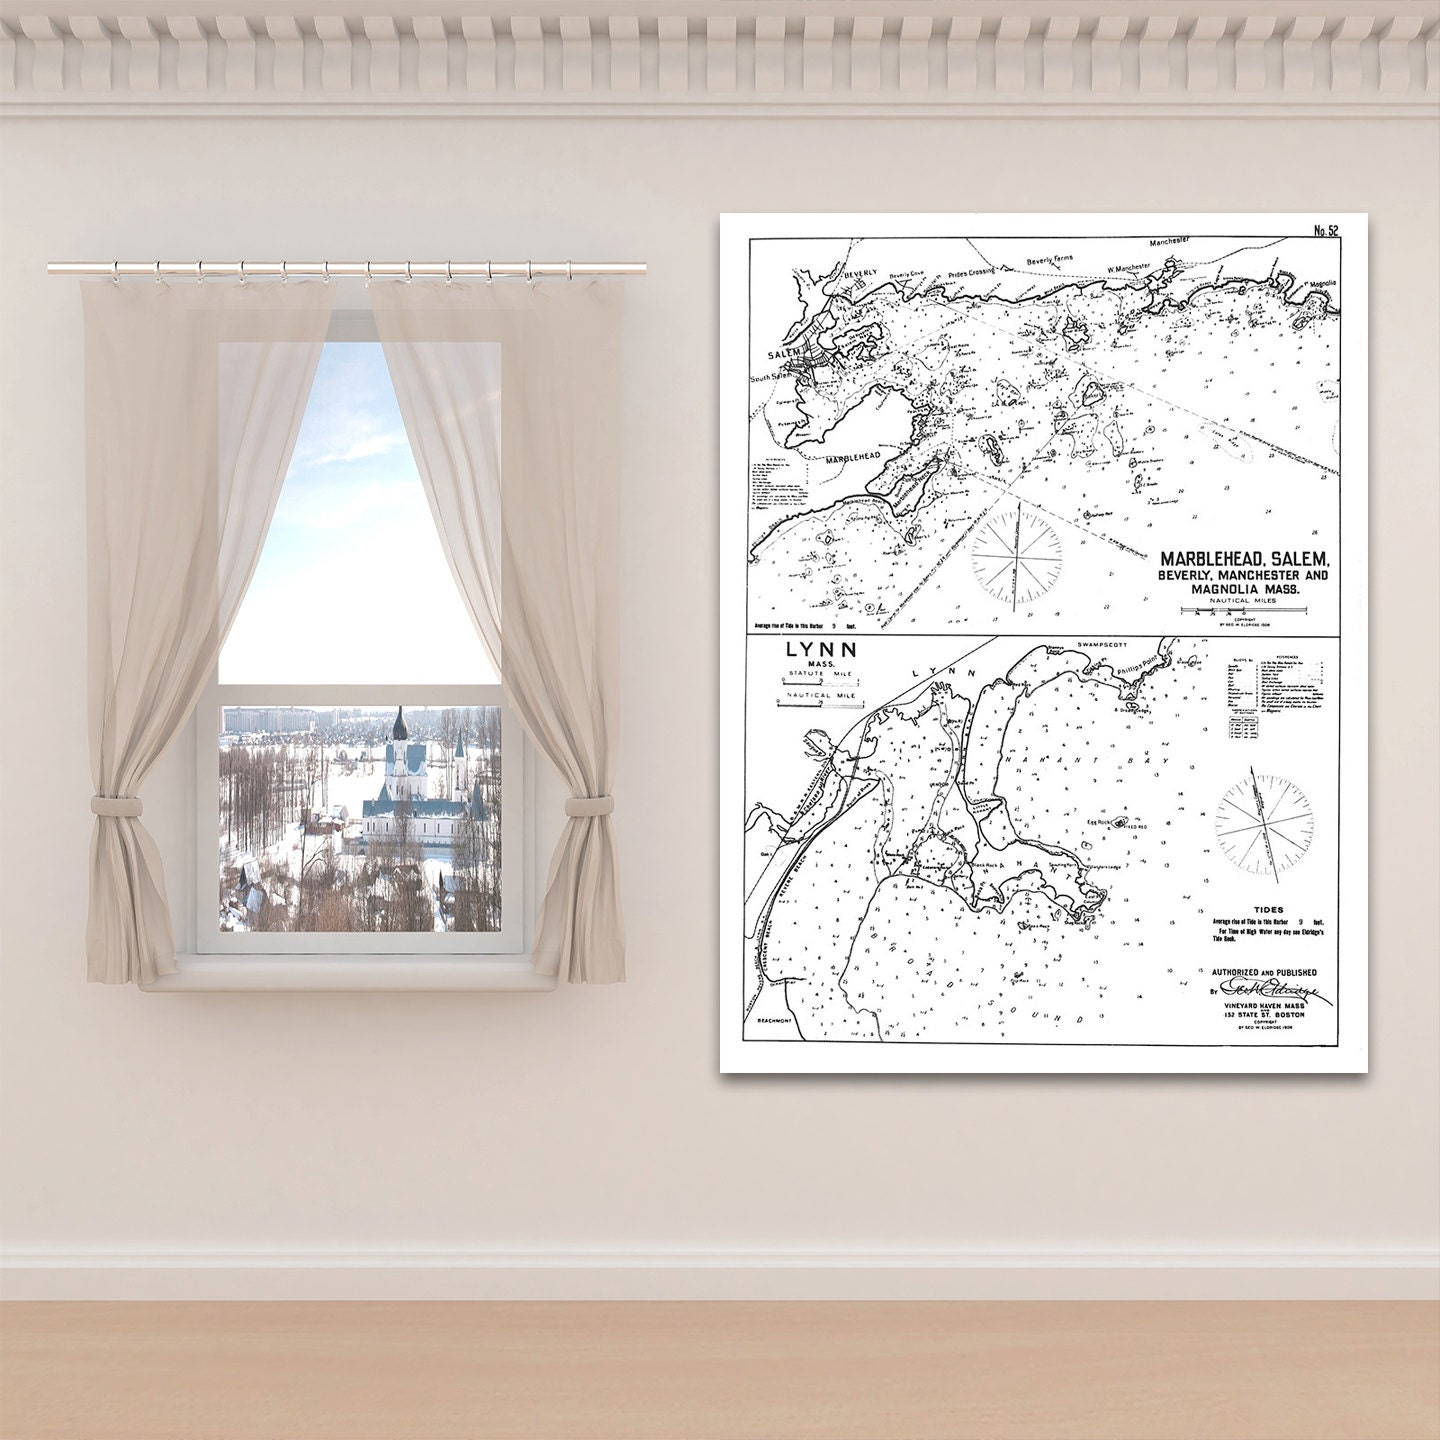 Antique print of harbor chart of marblehead salem lynn antique print of harbor chart of marblehead salem lynn massachusetts on your choice of photo paper matte paper or canvas giclee nvjuhfo Gallery